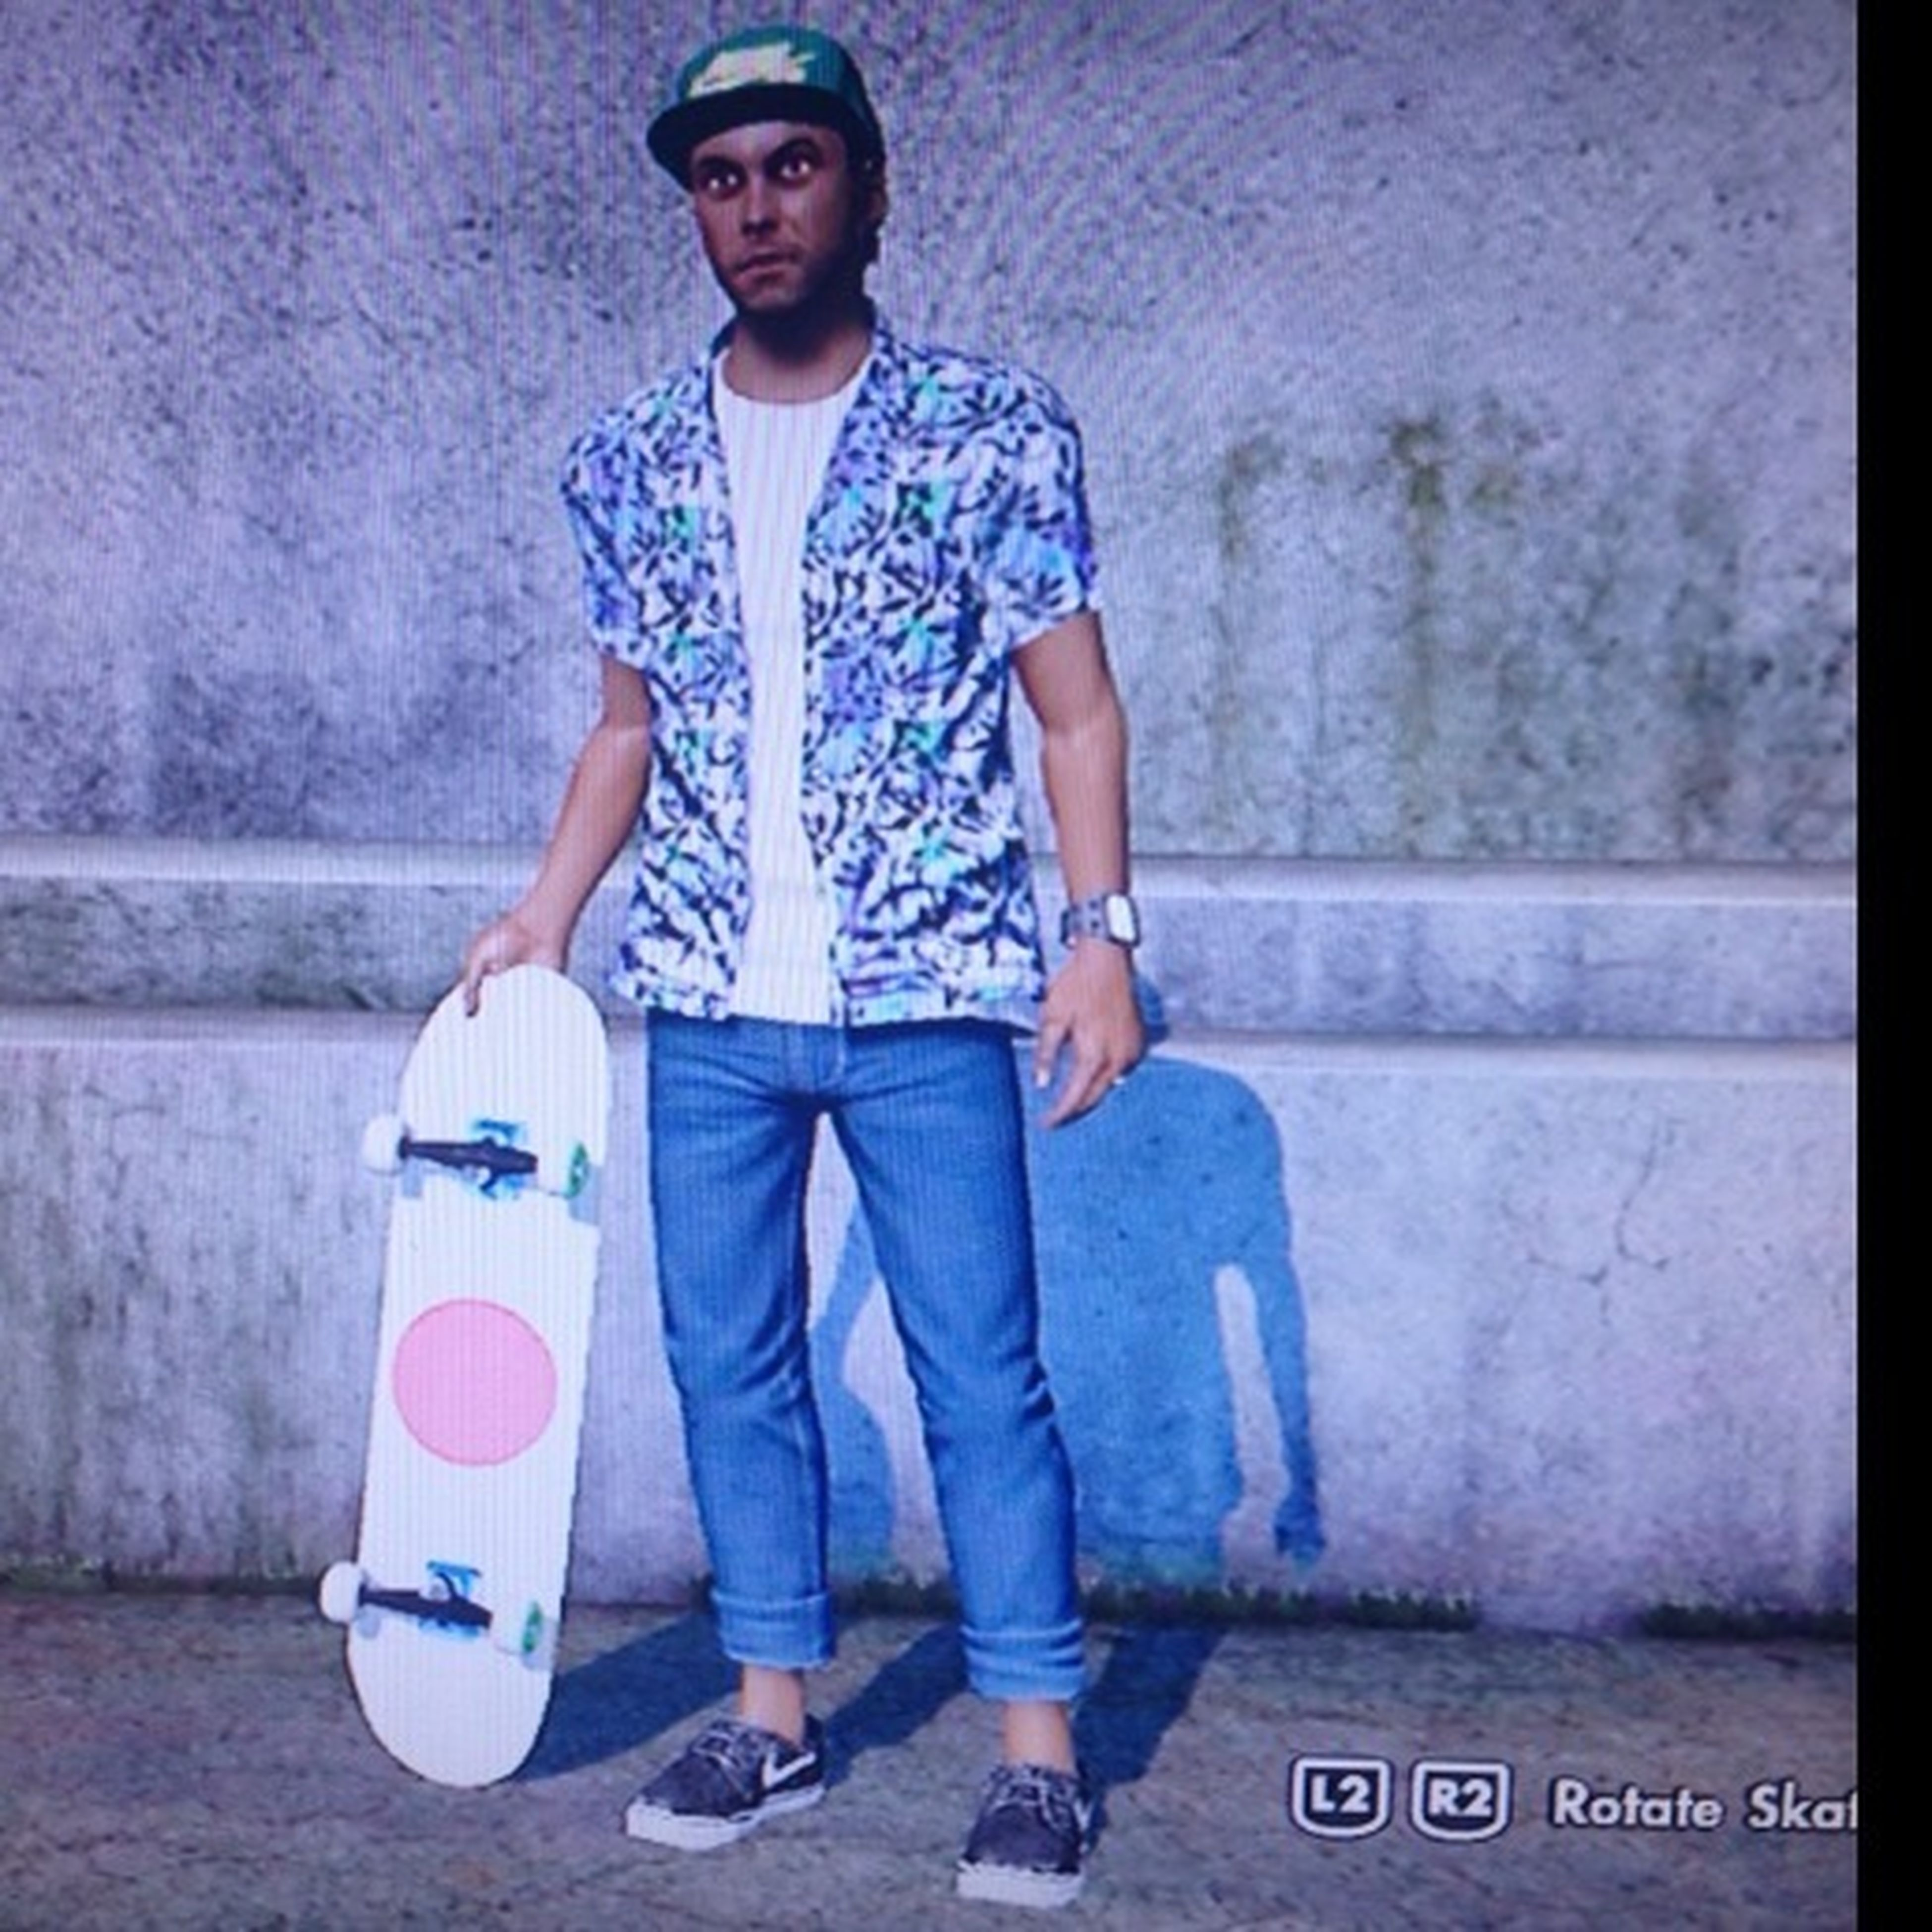 The skate 3 twin